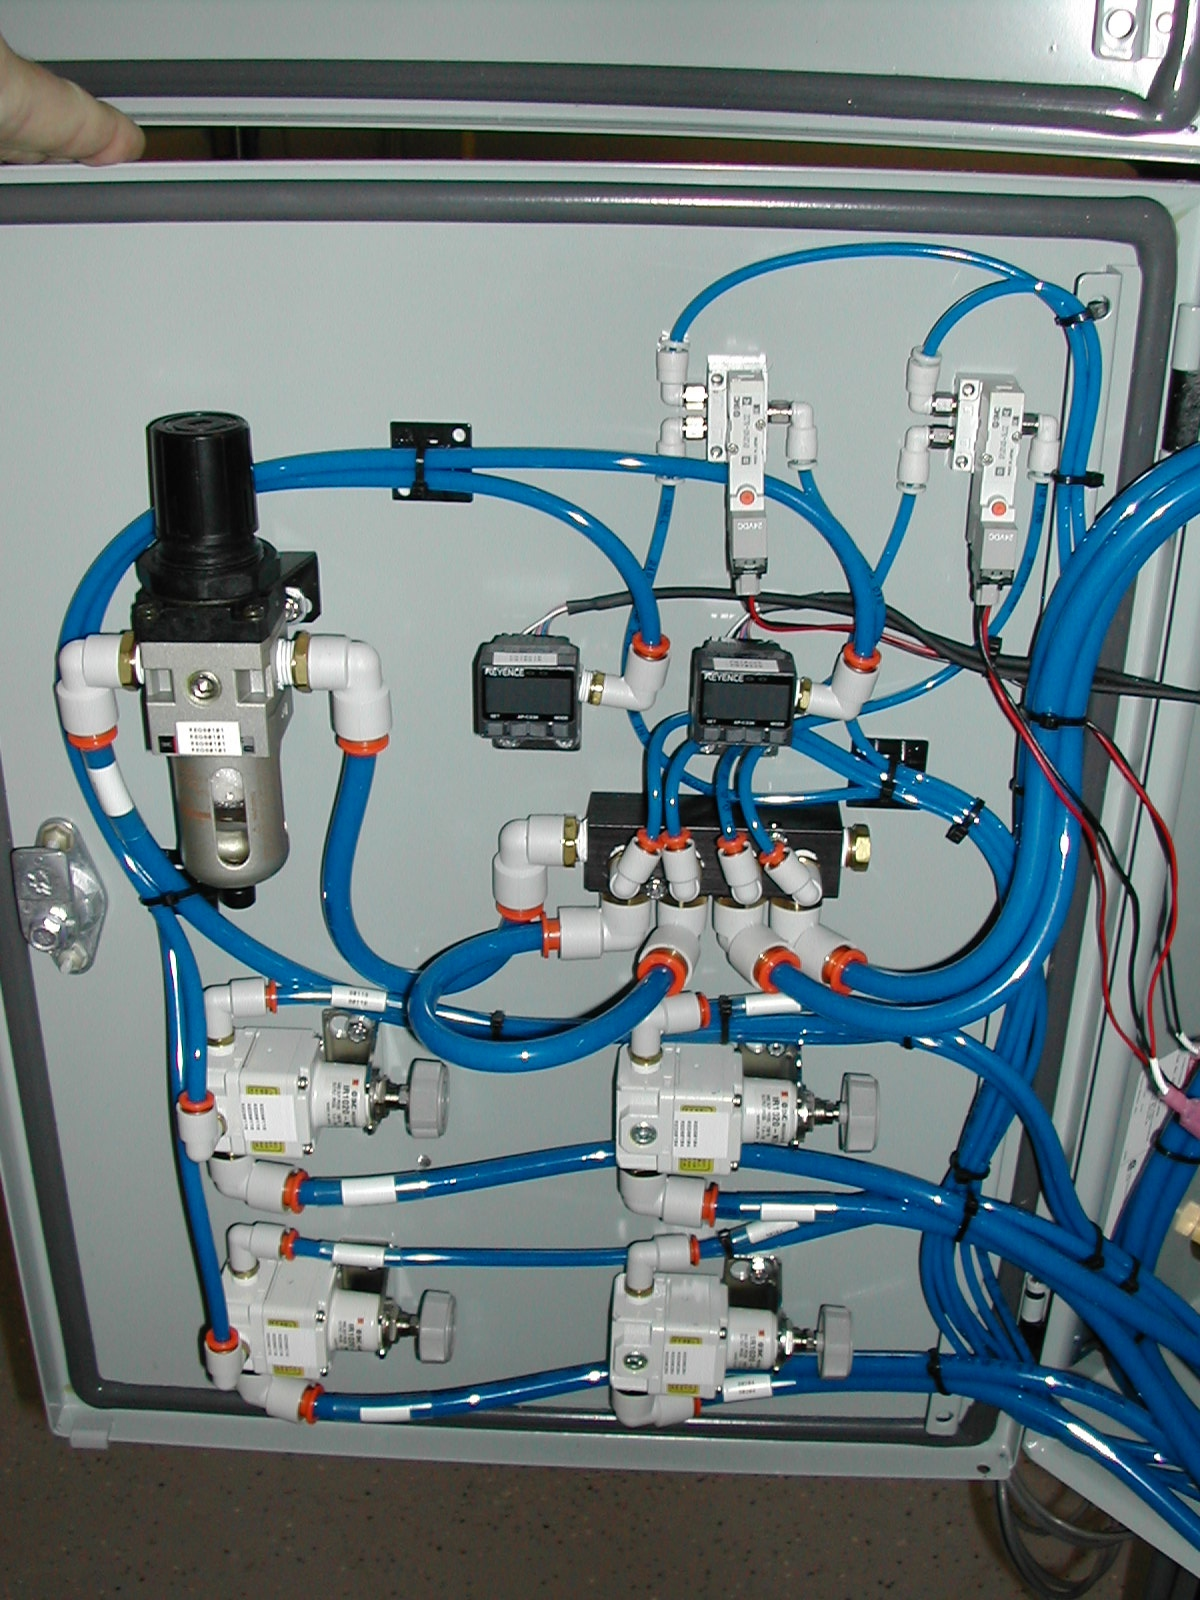 Example of pneumatic and hydraulic systems